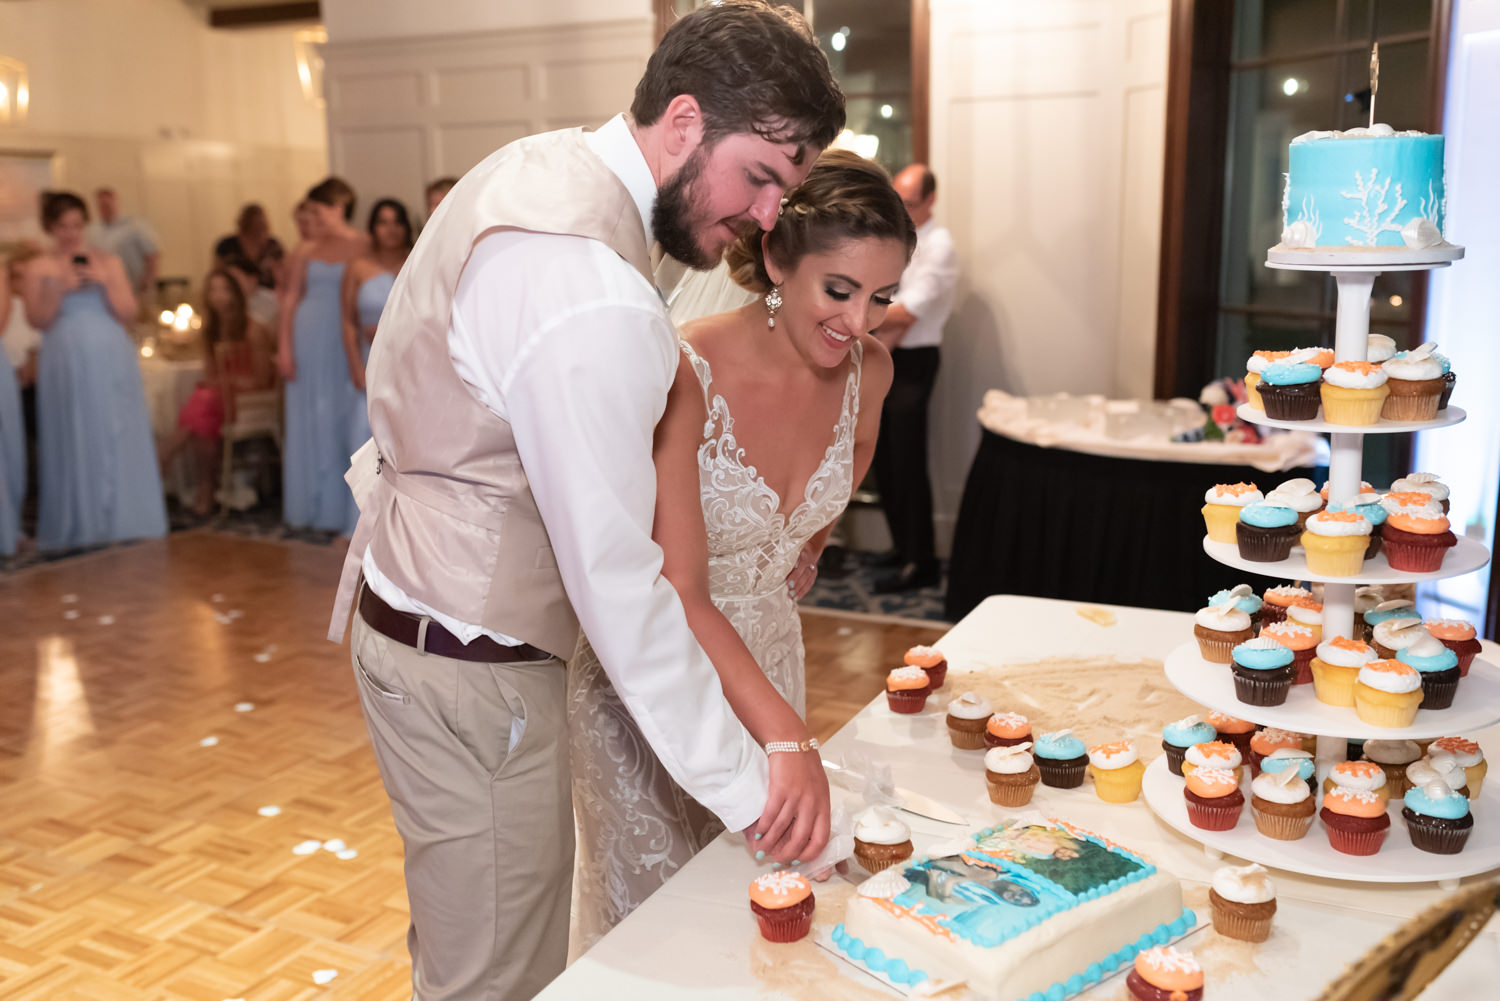 Cake cutting - Grande Dunes Ocean Club - Myrtle Beach